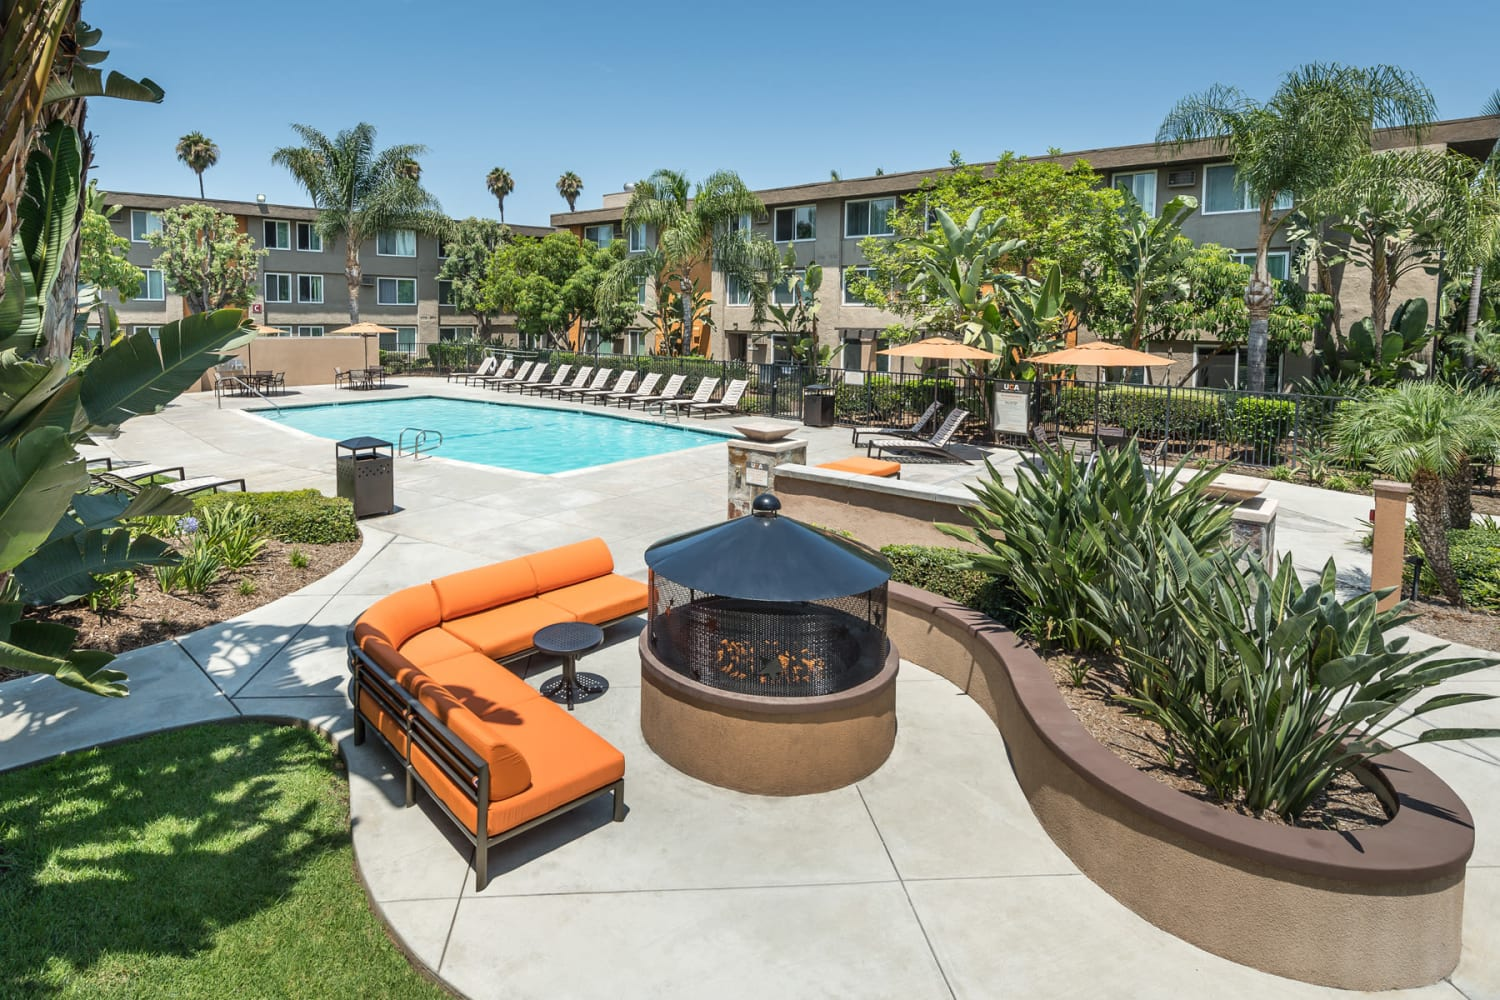 UCA Apartment Homes in Fullerton, California, offer a beautiful swimming pool and fire pit